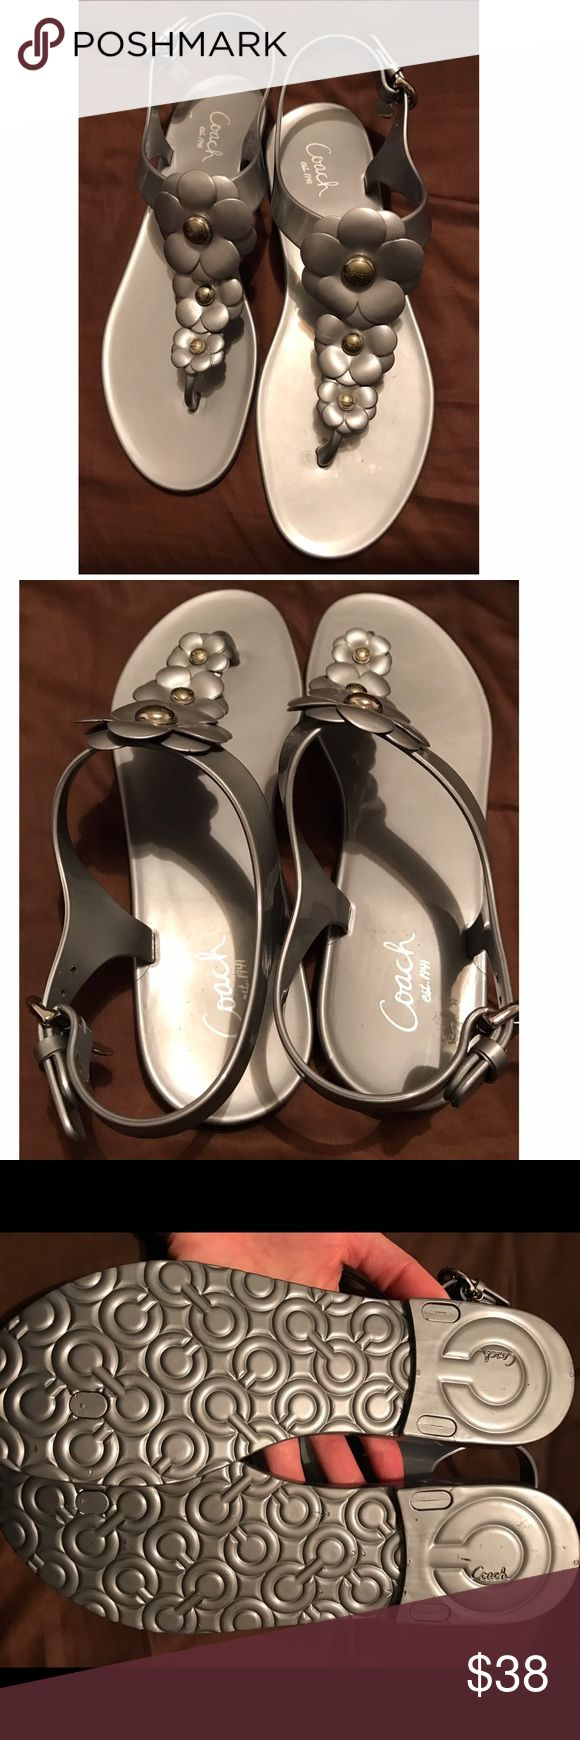 Coach women's sandals size 9 New Coach women's jelly sandals. Tried on but never been worn. Does not come with box  color is gray/Silver size 9 coach Shoes Sandals